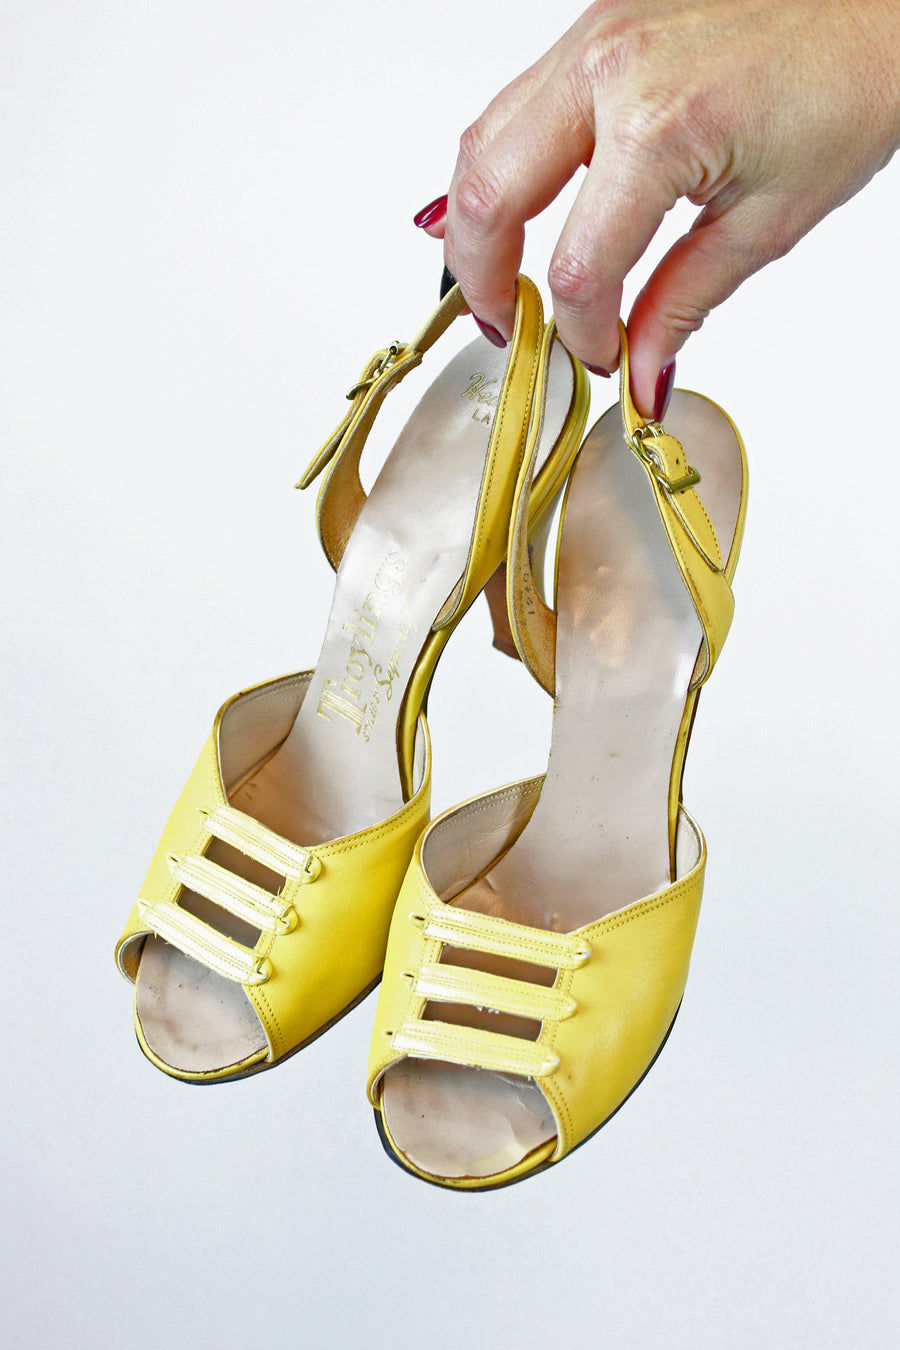 1950s peep toe shoes | vintage slingbacks | size 5.5